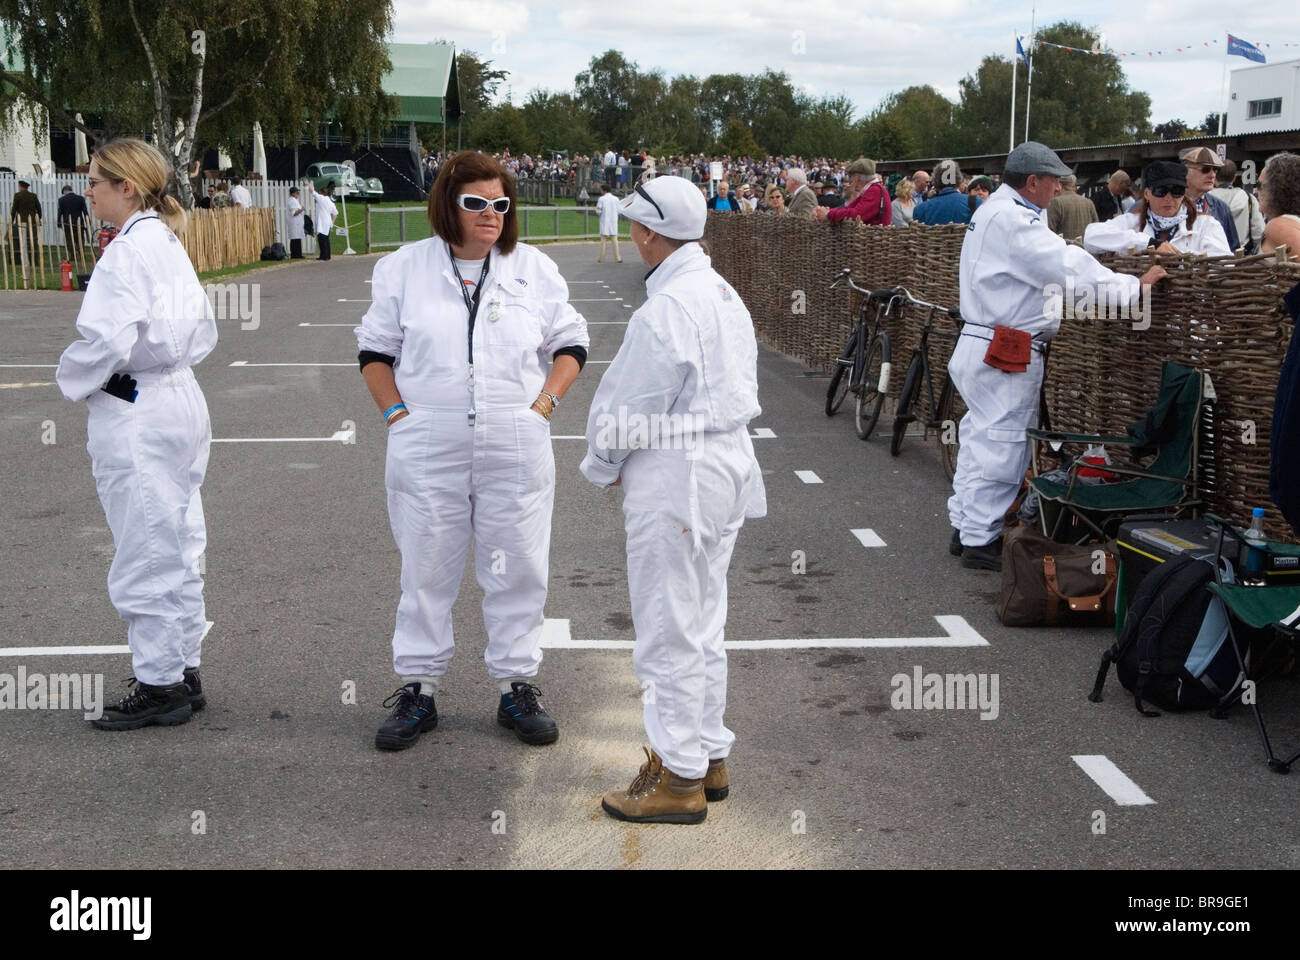 Goodwood Festival of Speed. Goodwood Sussex. UK. Ladies of the Pits. - Stock Image